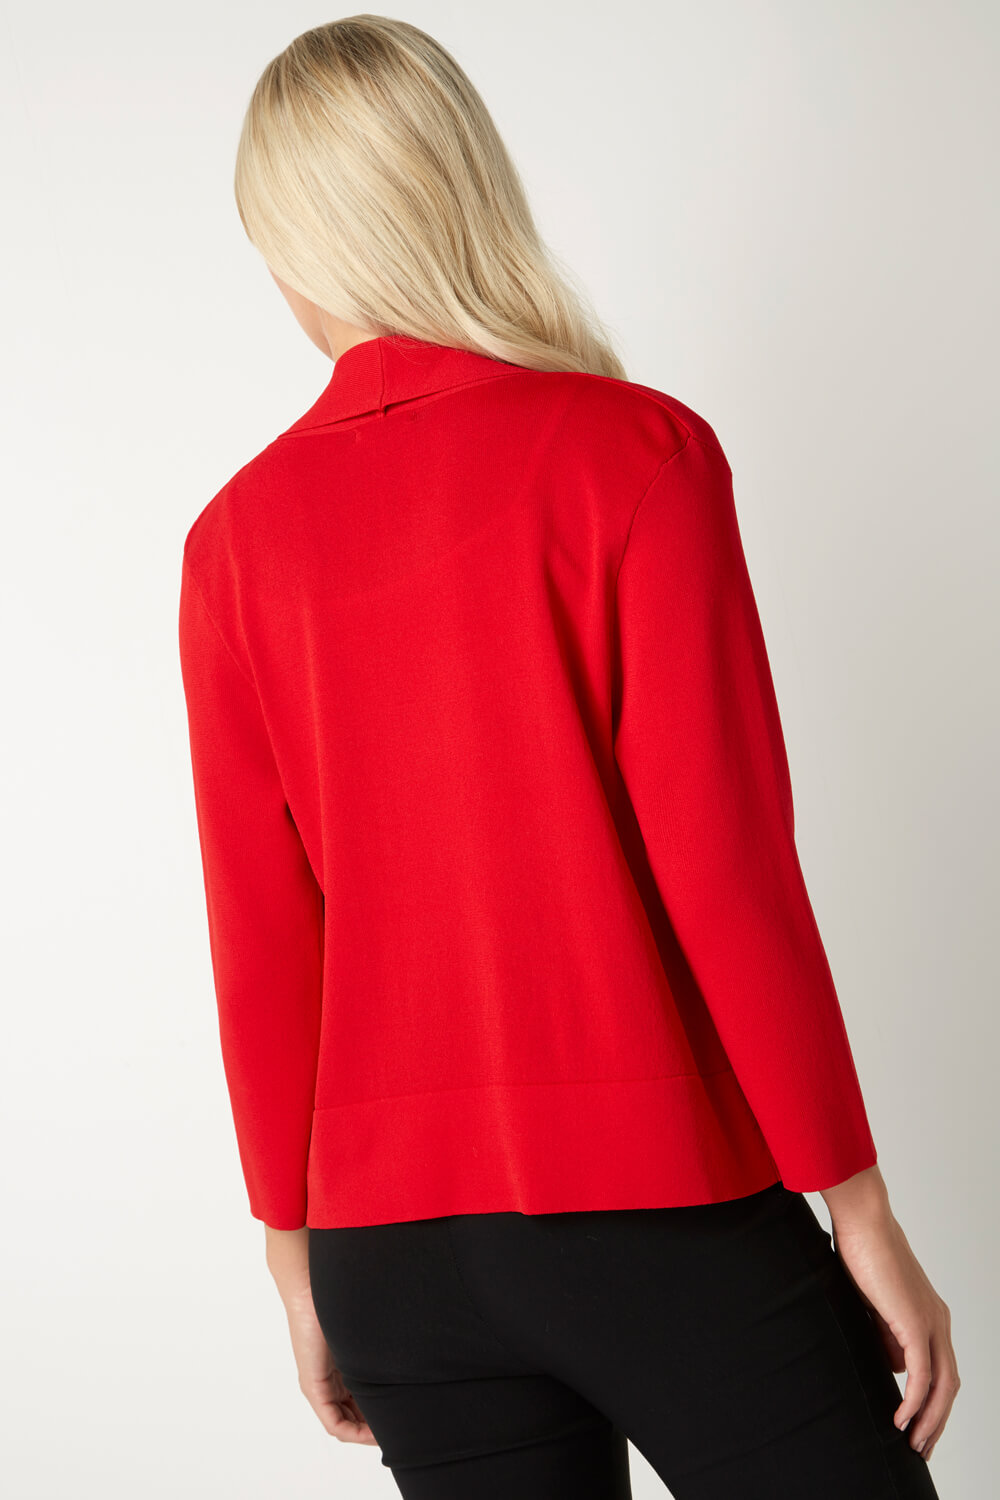 Roman-Originals-Women-039-s-Red-Plain-Shrug-Cardigan-Sizes-10-20 thumbnail 13